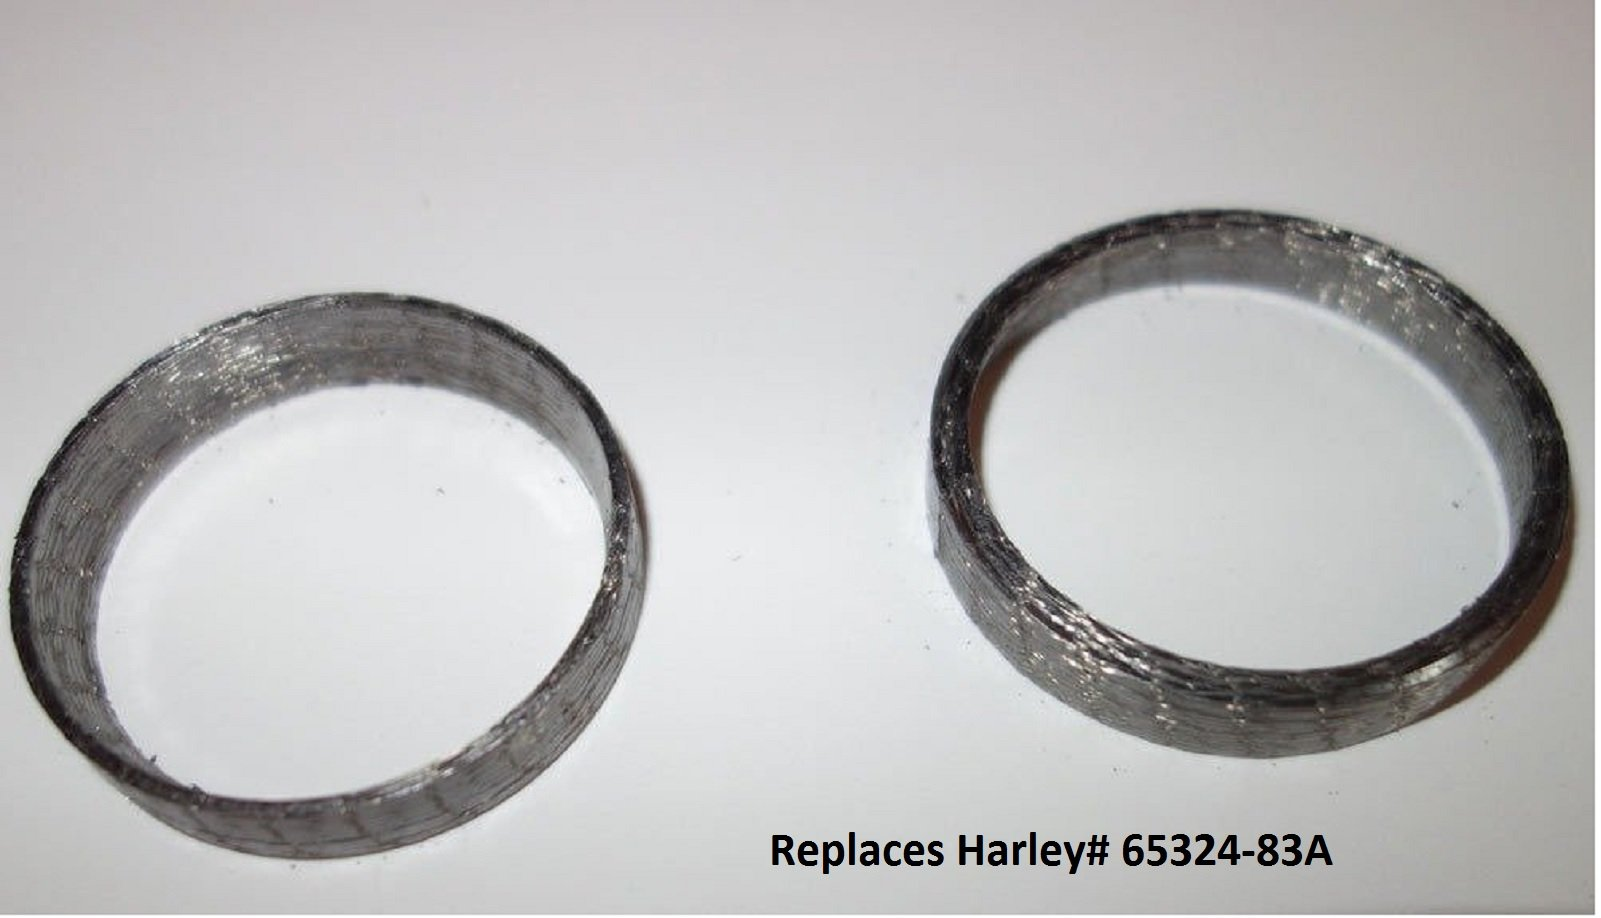 Orange Cycle Parts Tapered Exhaust Gaskets Pair (2) For Harley Big Twin 1984 - 2016 / 1986 - 2016 Sportster XL / Will NOT WORK on V-ROD repl. # 65324-83A